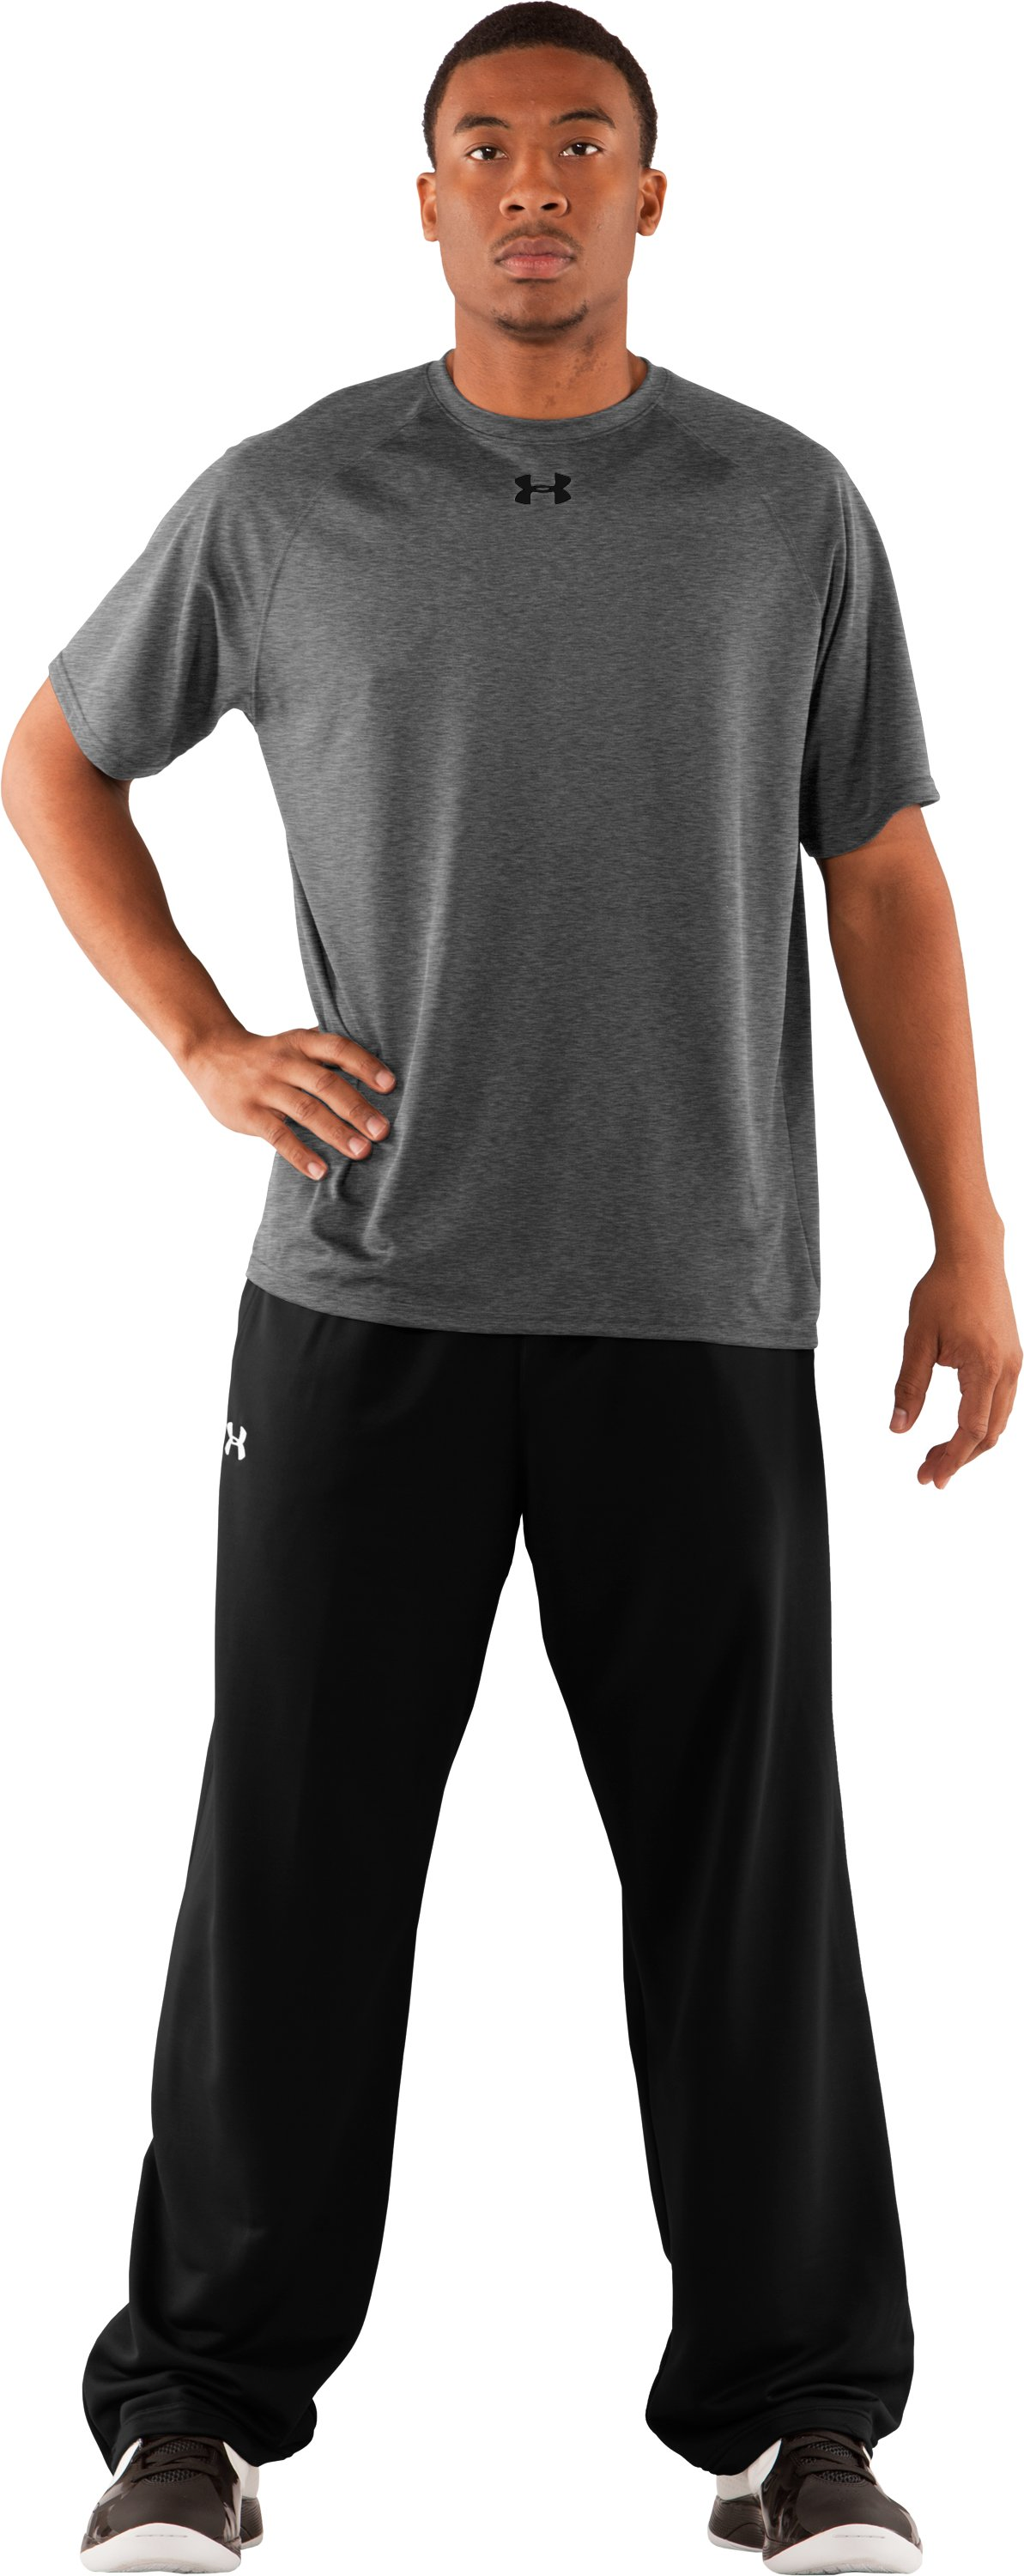 Men's HeatGear® Team Loose Short Sleeve T-Shirt, Medium Gray Heather